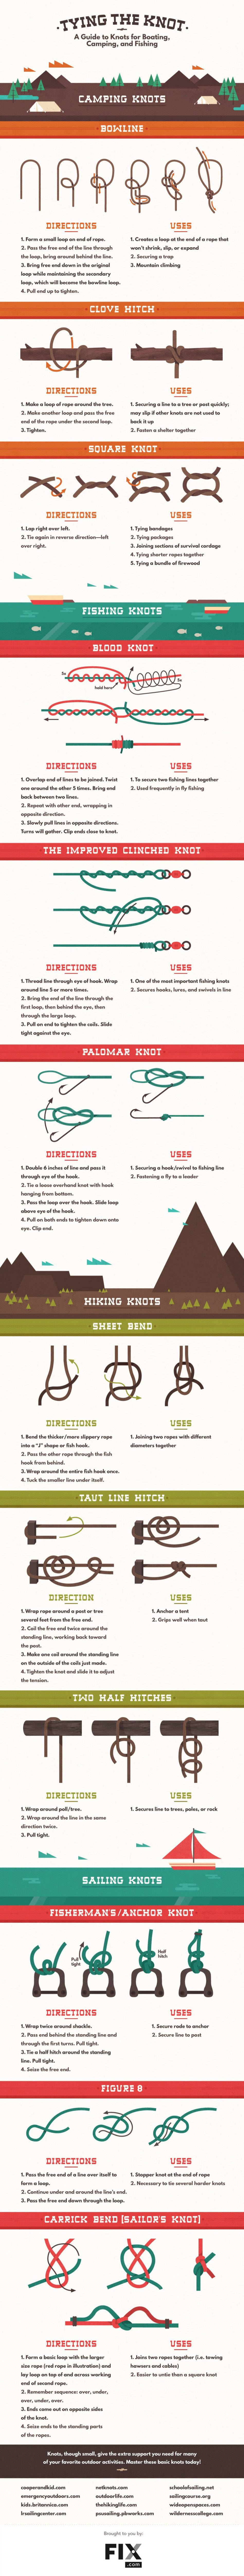 knot-tying-guide